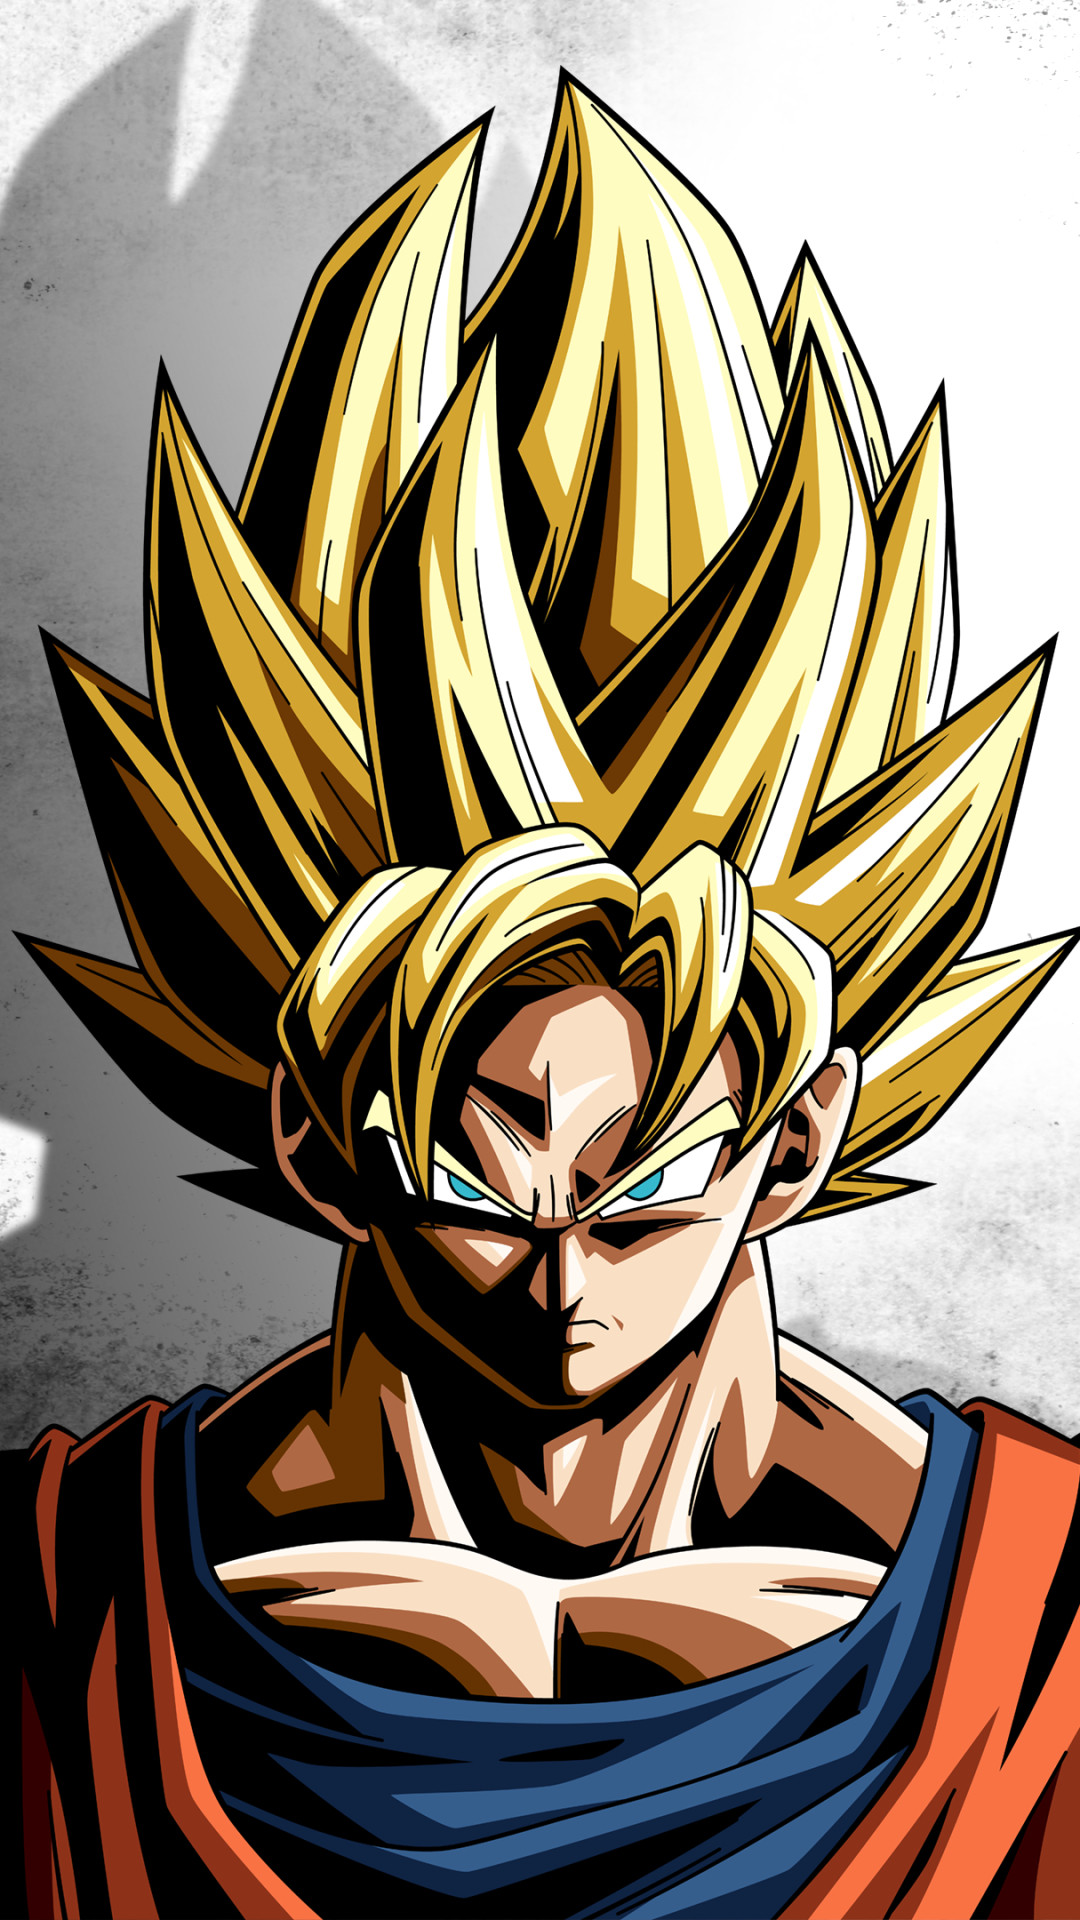 Dragon Ball Z Wallpaper For Android Posted By Ryan Sellers